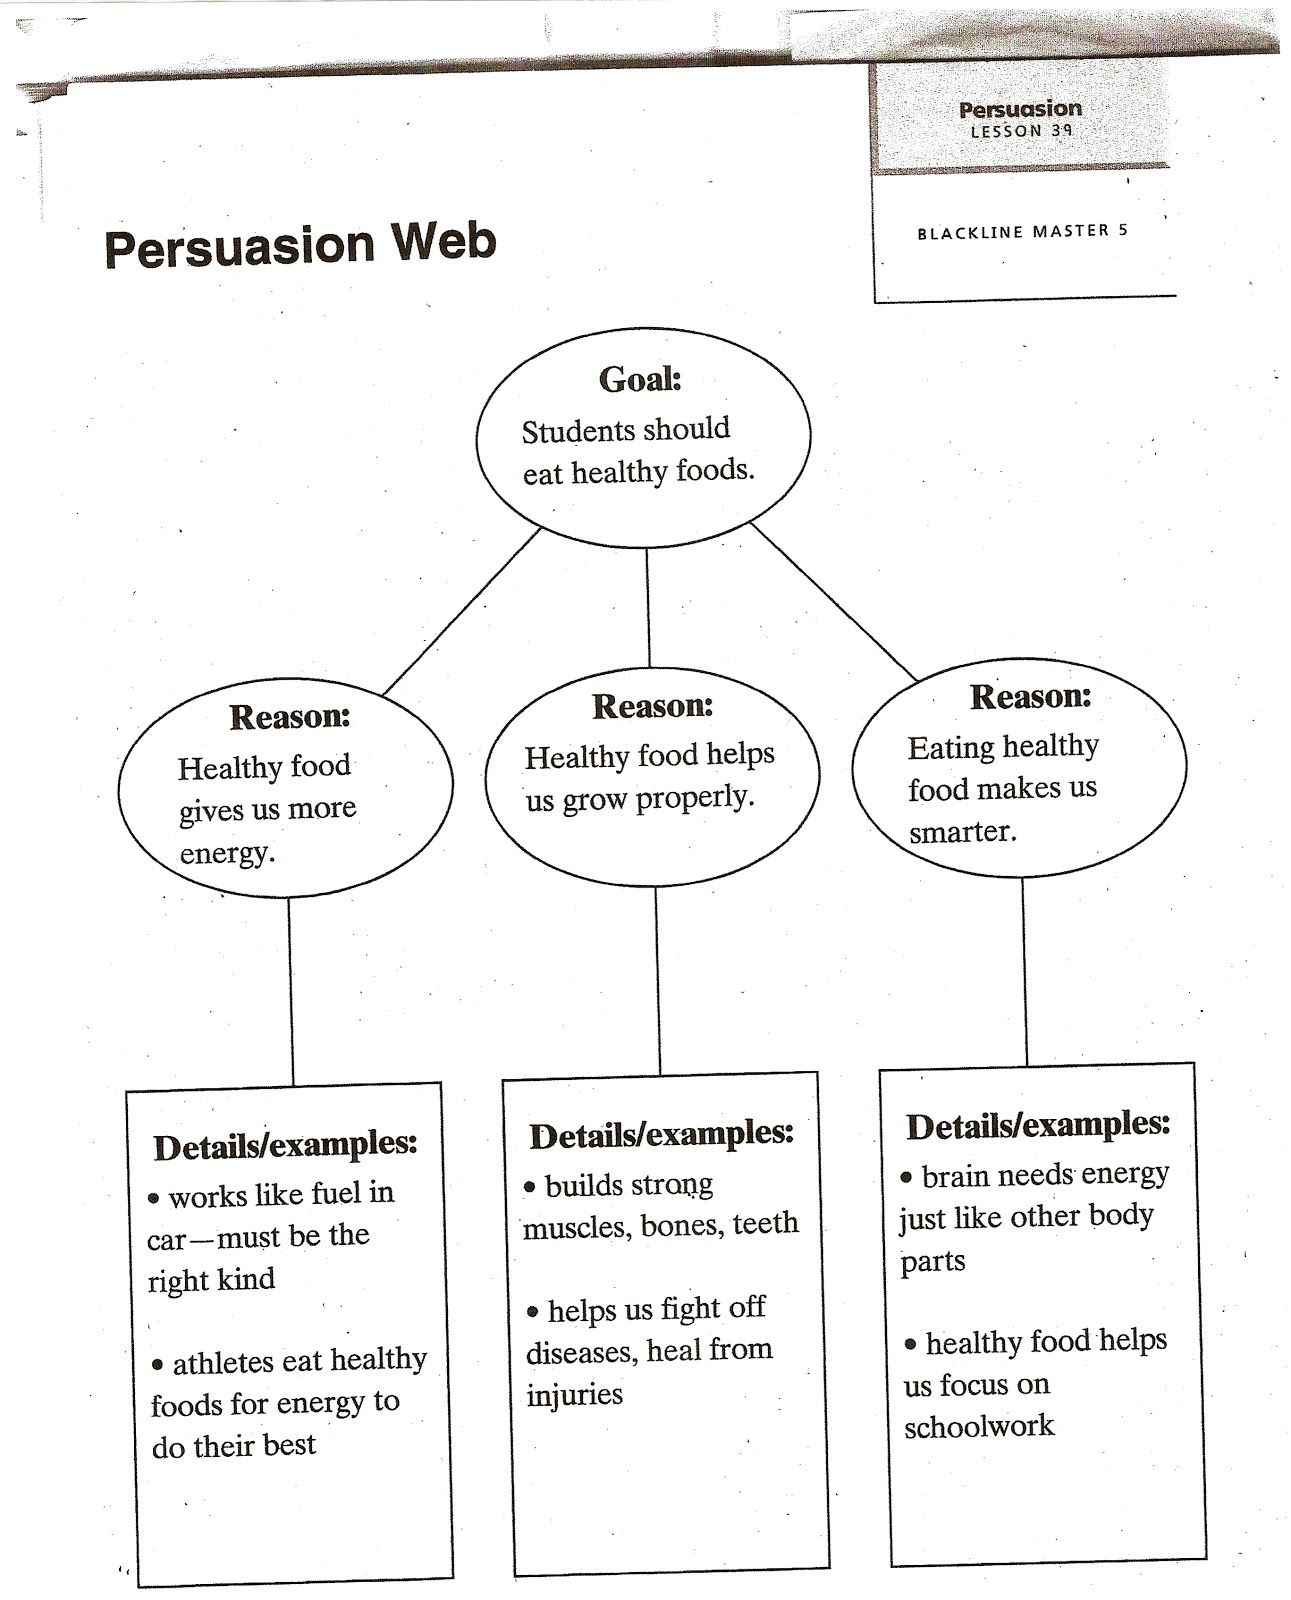 the first step you should take when writing a persuasive essay is to